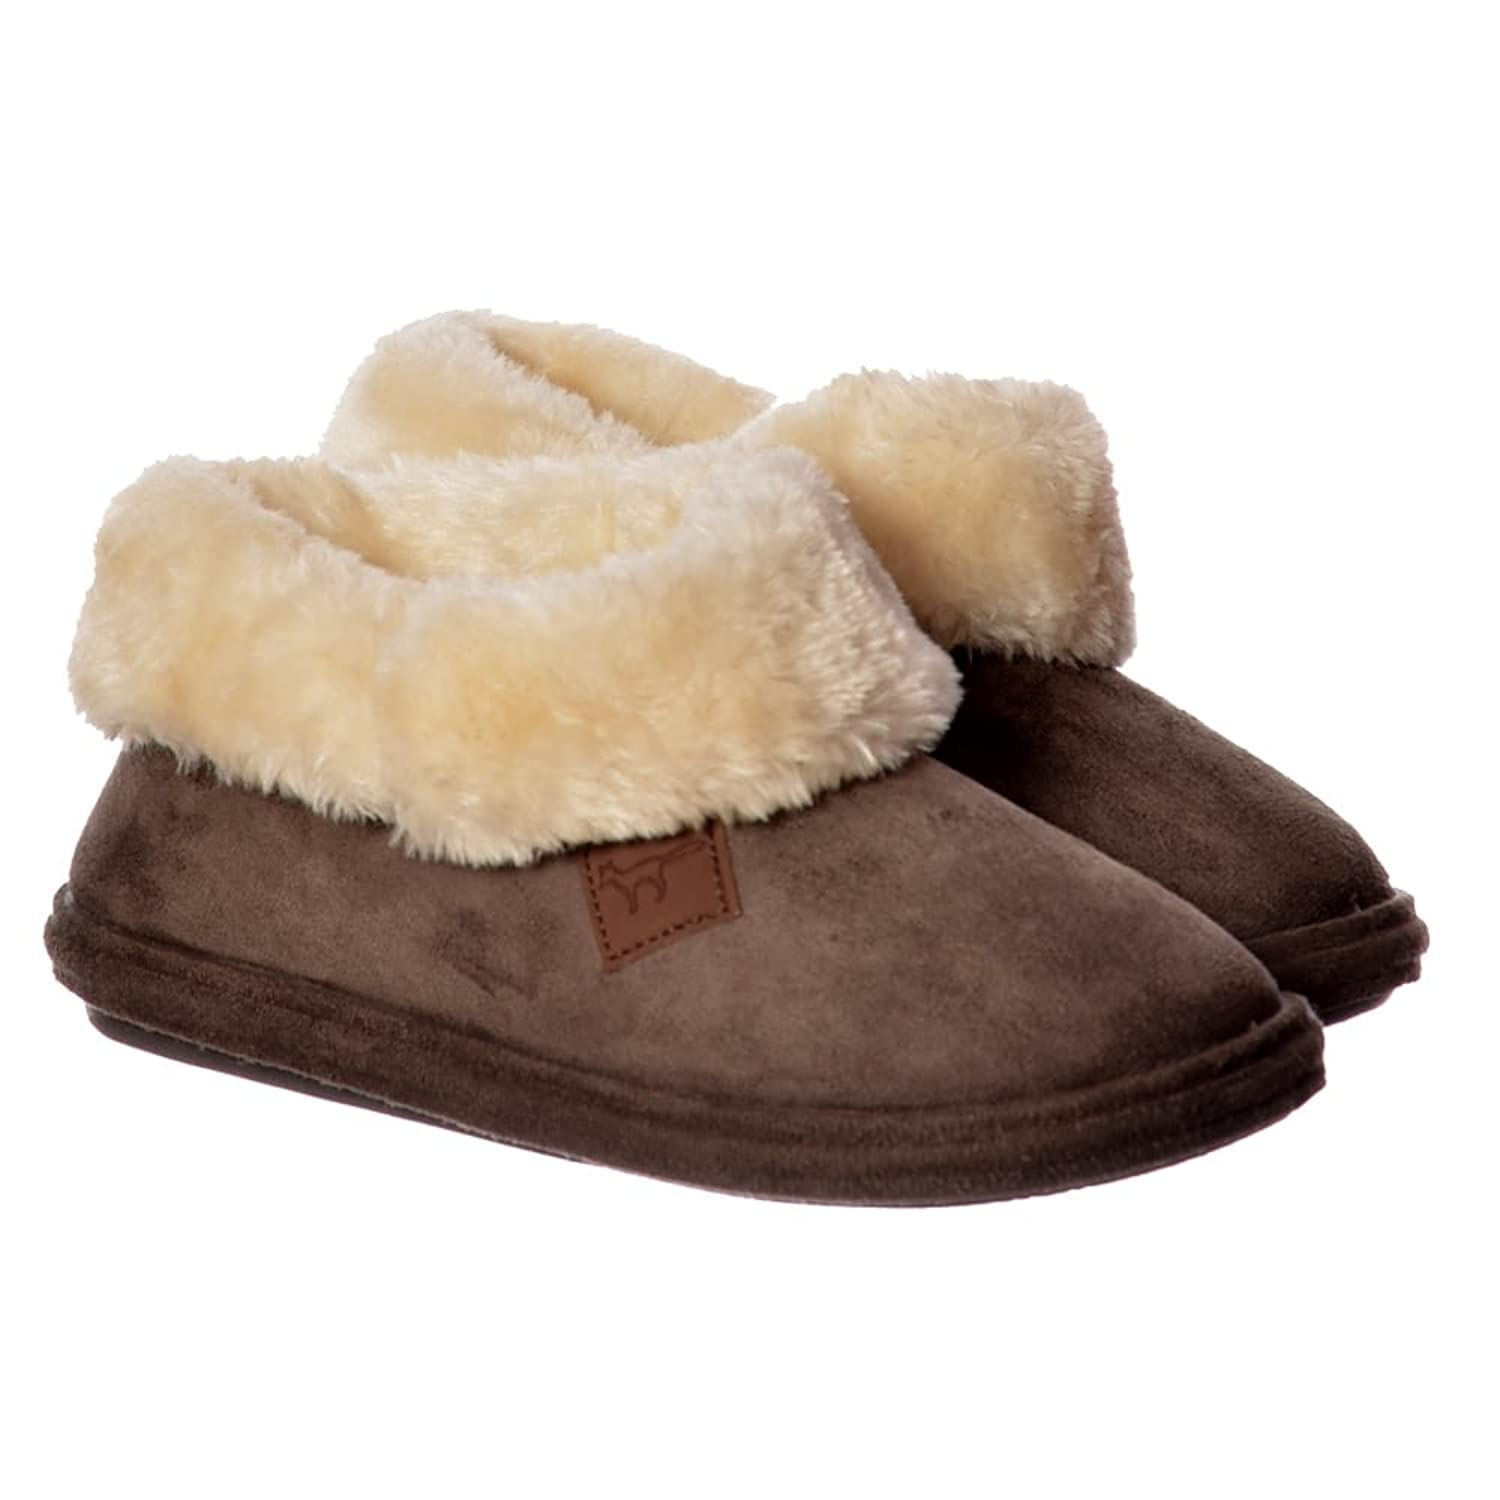 Jo & Joe Chiltern Fur Lined Fur Collar Slipper Boot - Cognac, Dark Brown UK5 - EU38 - US7 - AU6 Dark Brown